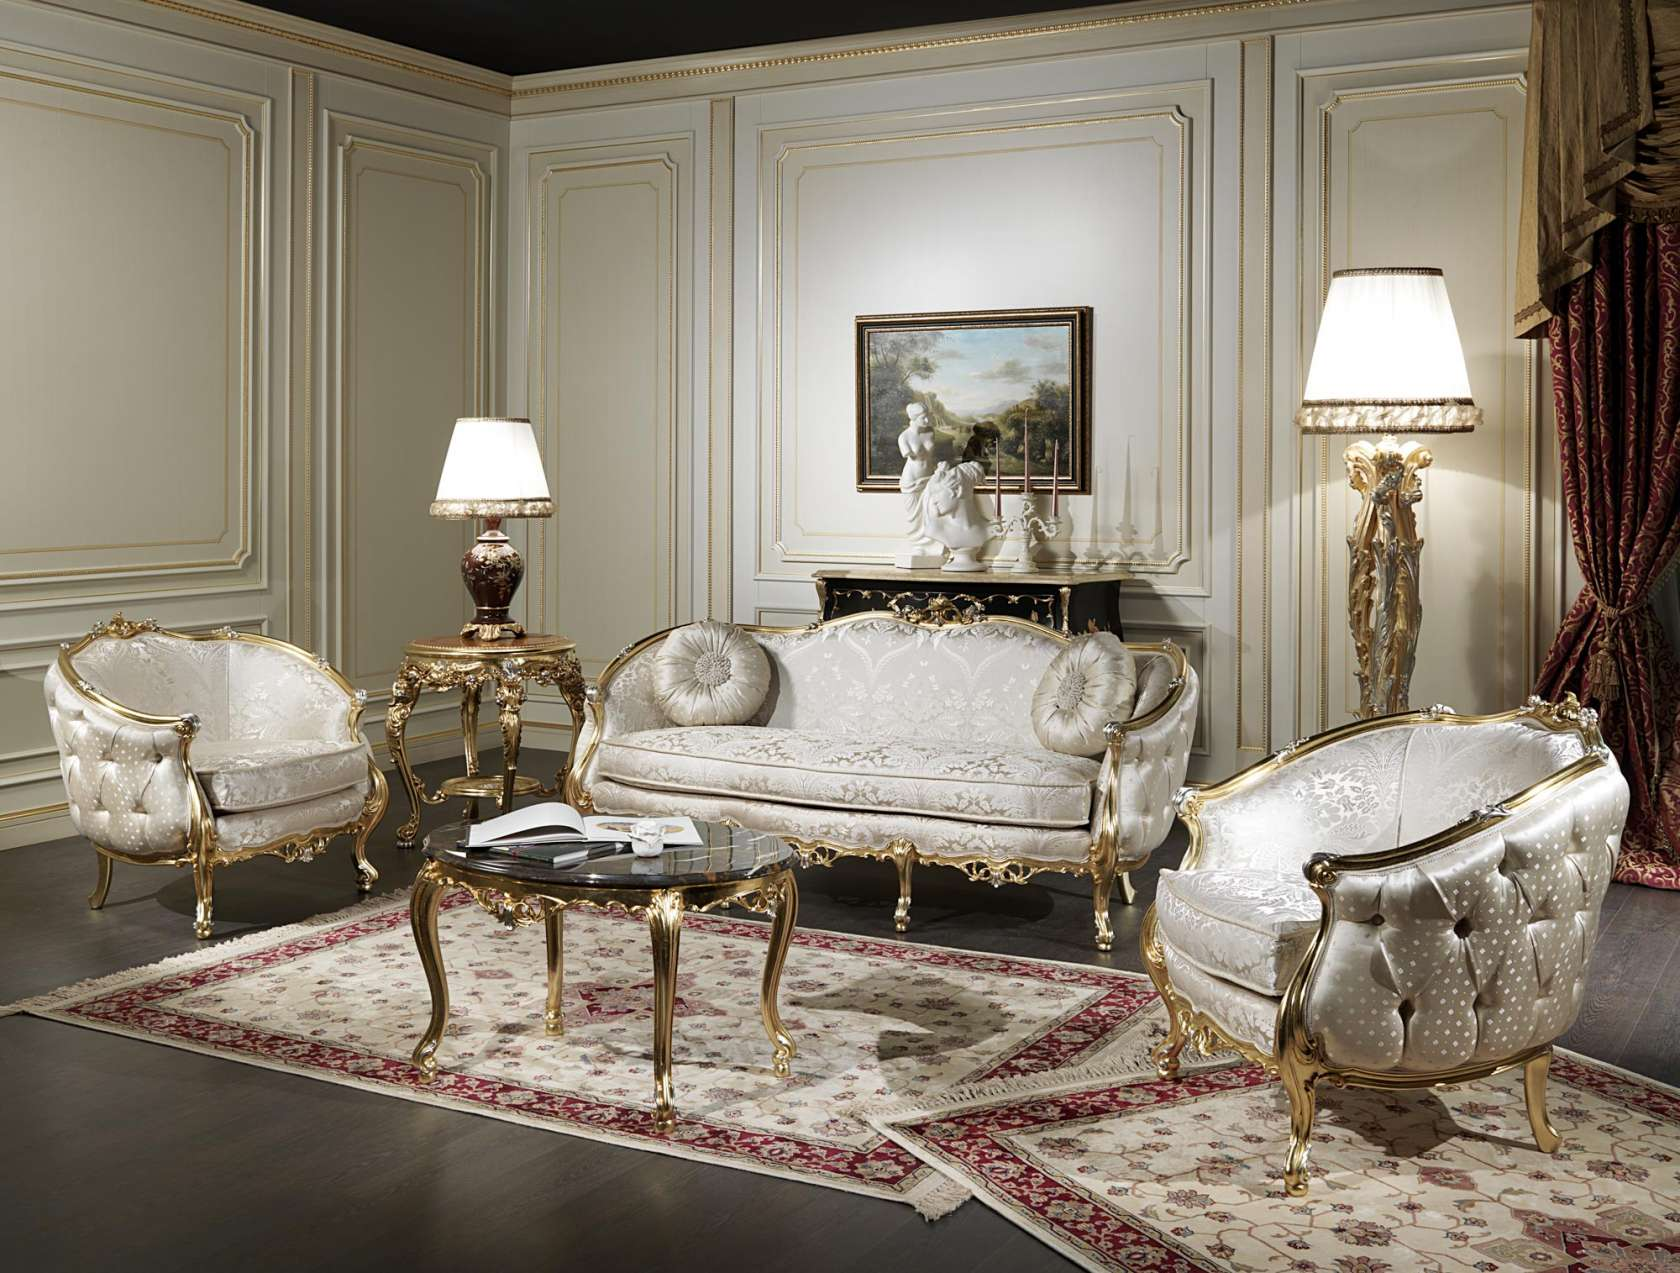 Venezia Luxury Classic Living Room